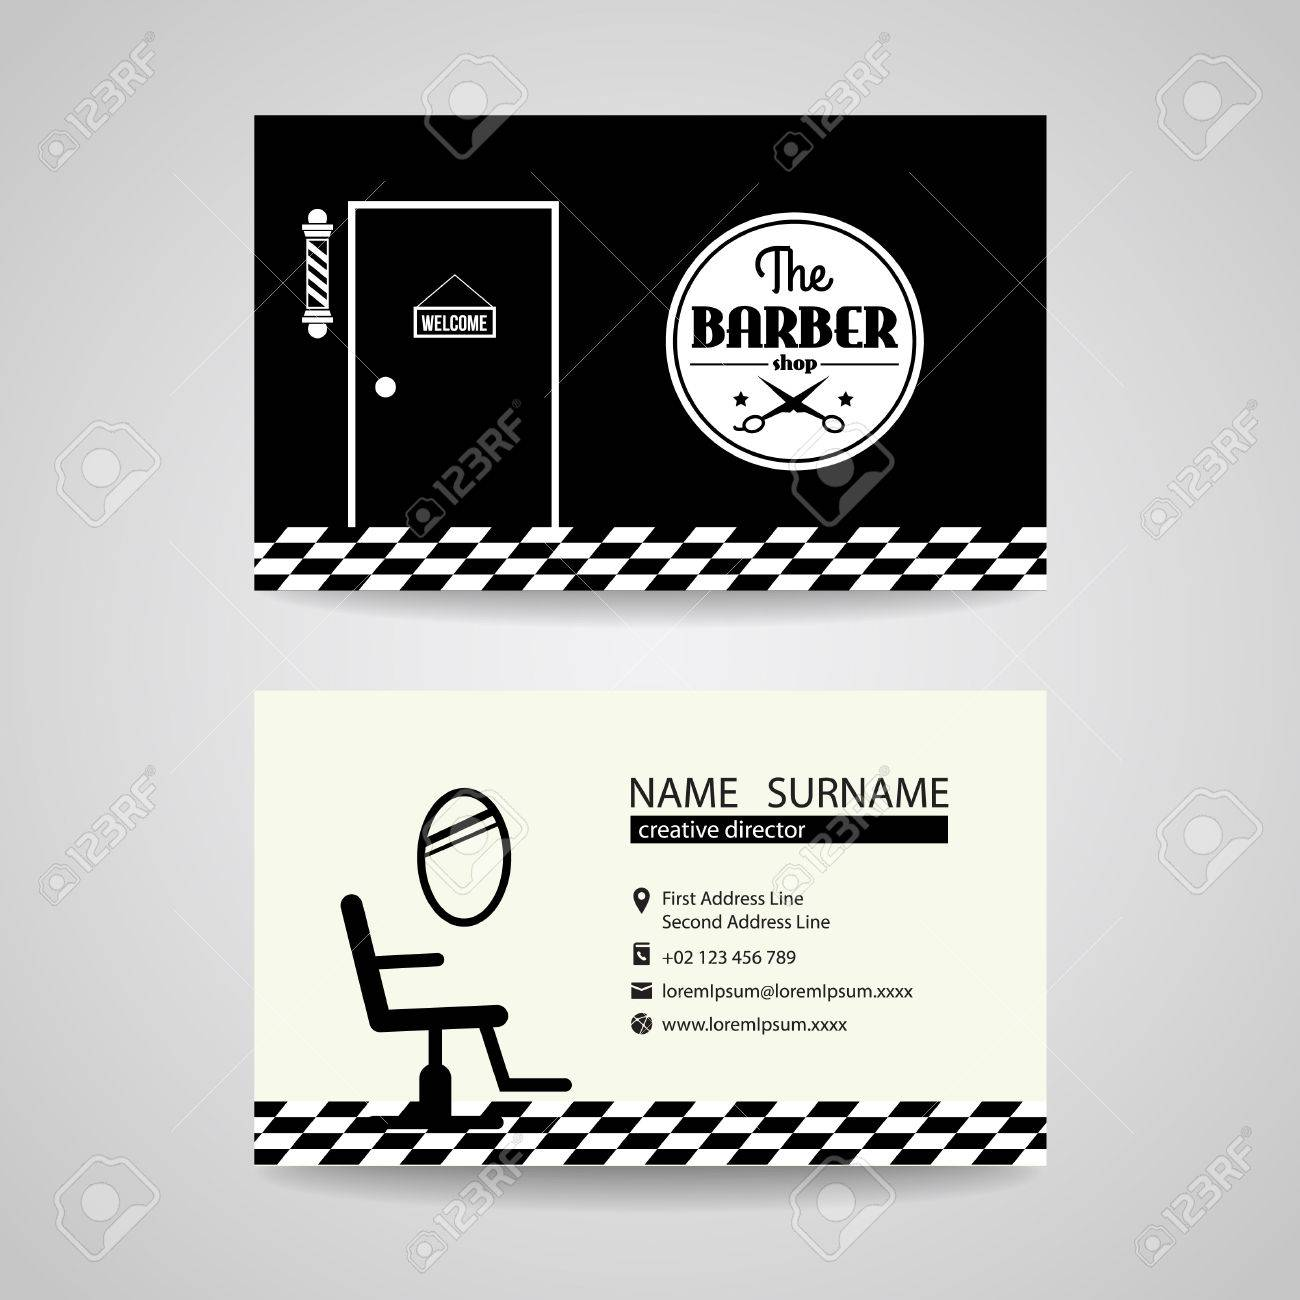 Barber Shop Back And White Retro Business Card Vector Design Royalty ...